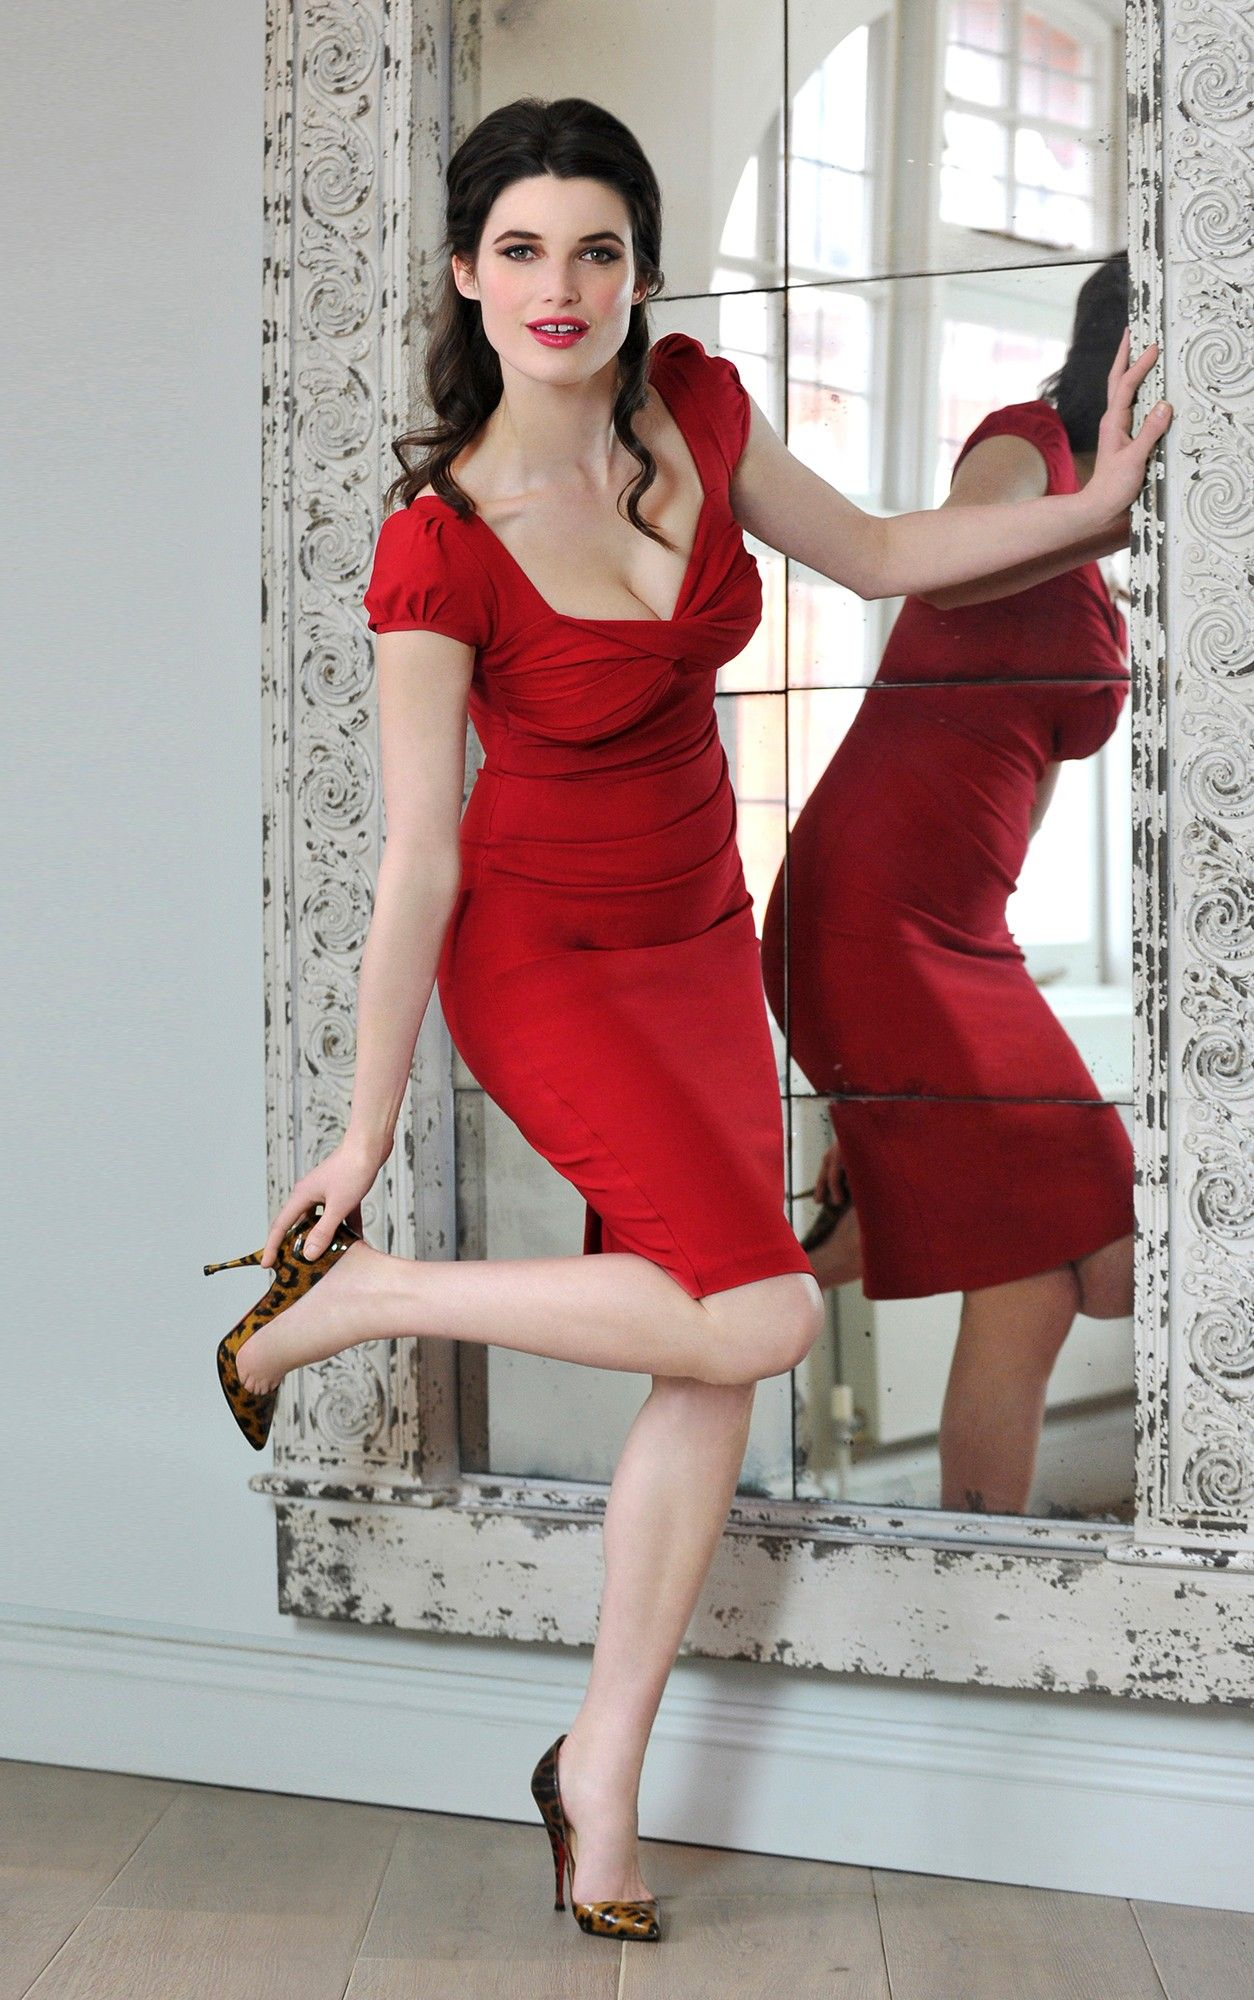 Nigella Dress in red. Bodycon Dress as worn by Nigella Lawson & Susan  Sarandon: